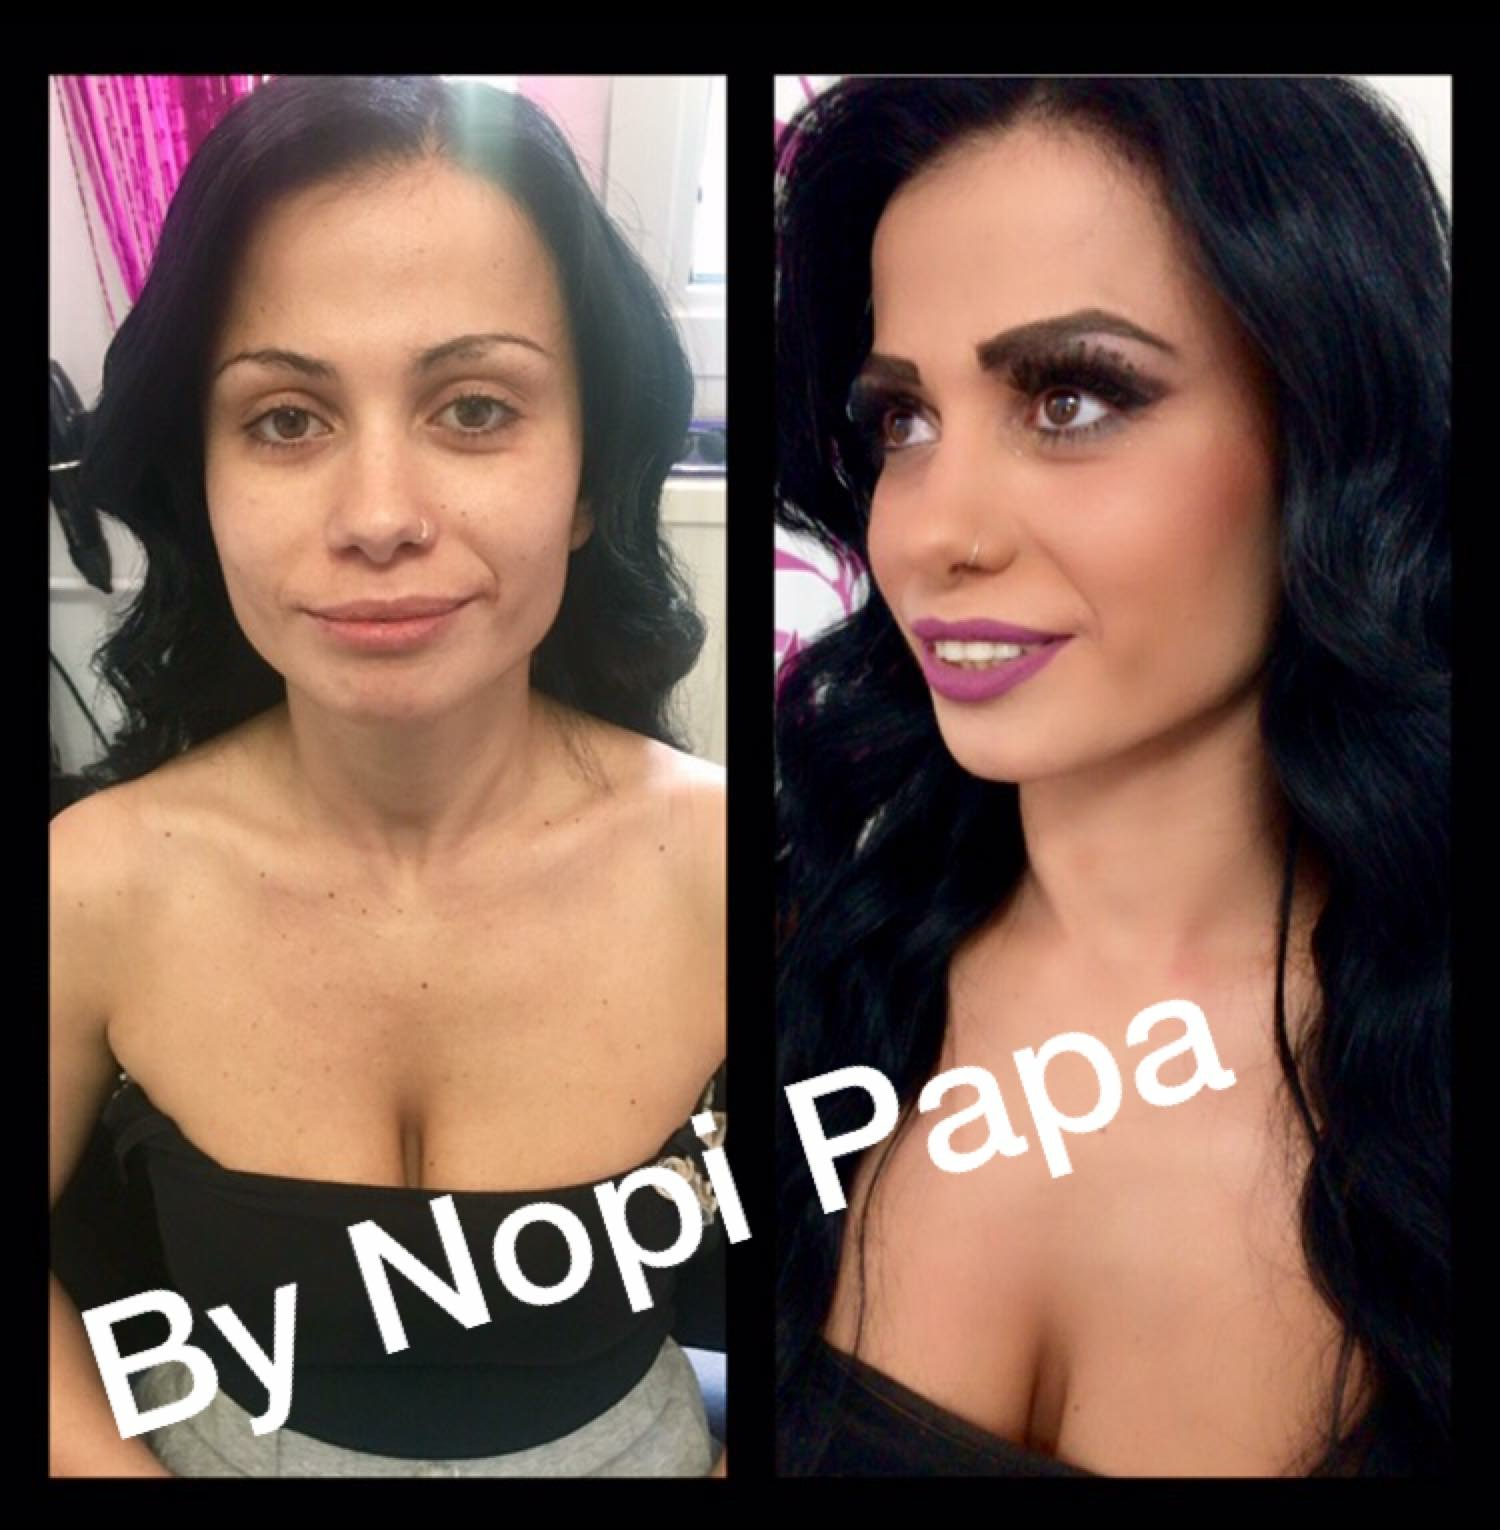 Queen beauty hair-makeup - Nopi Papa , Make up artist, Hair styling,